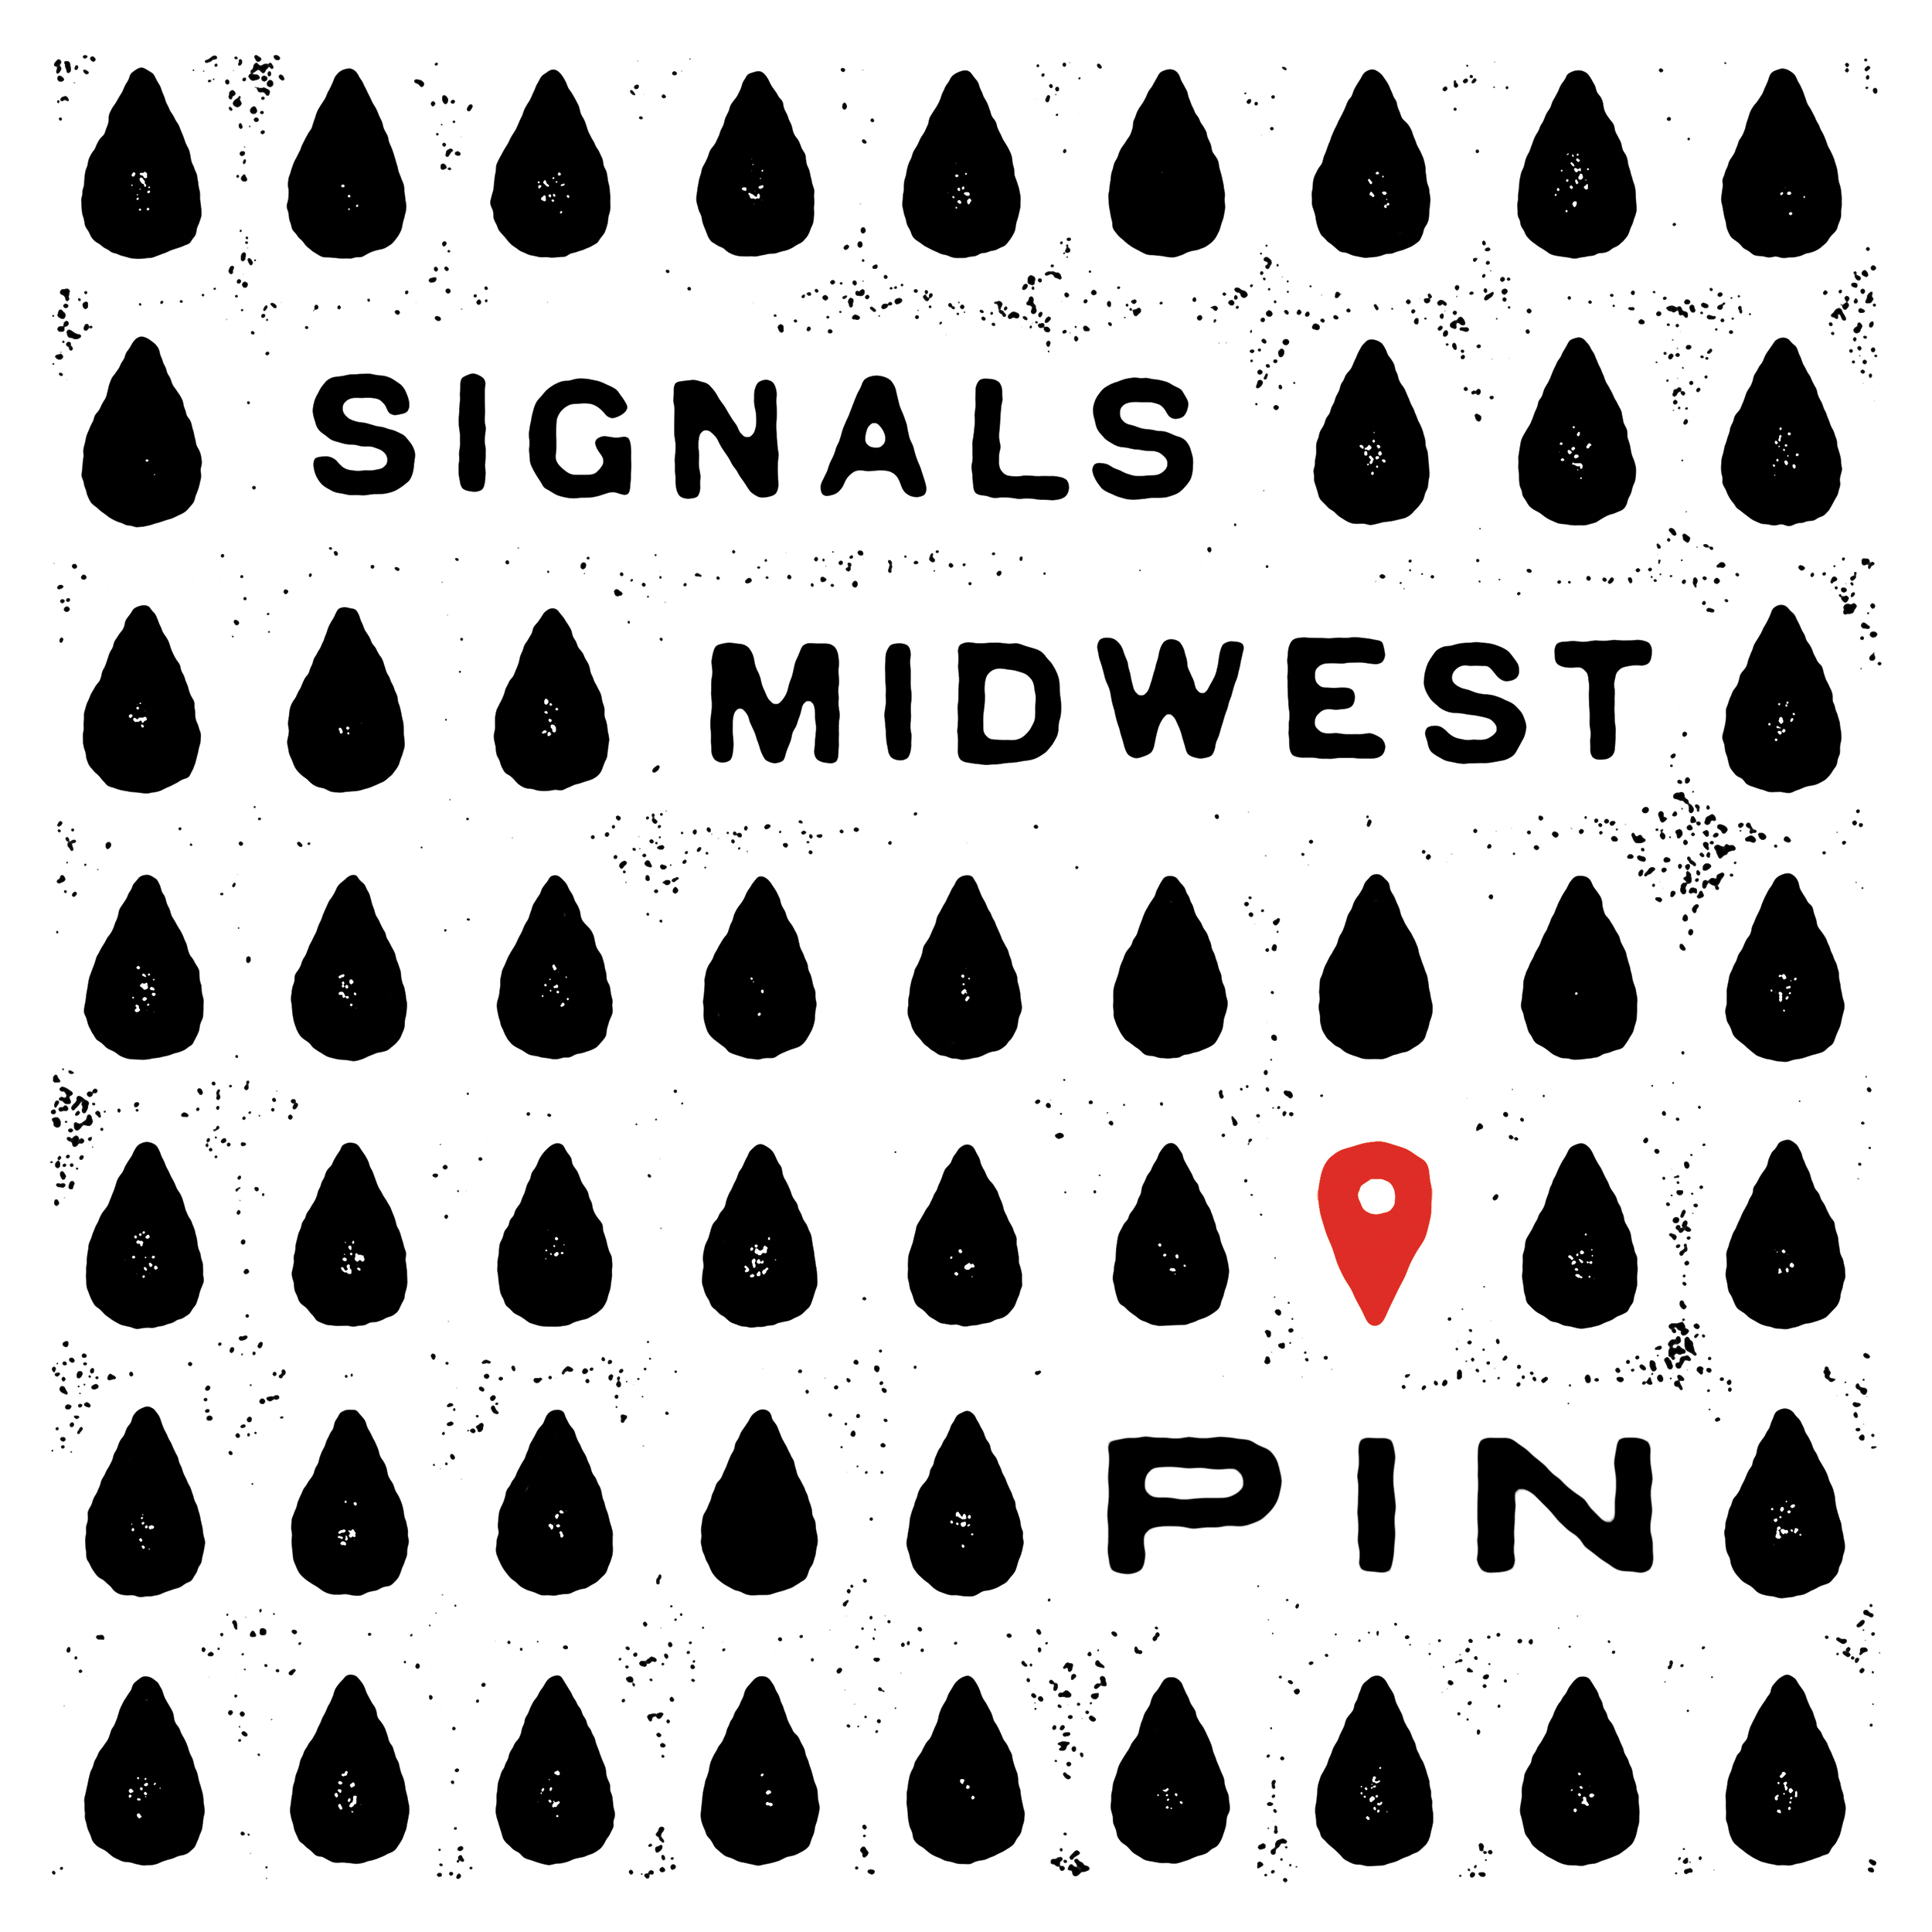 Signals Midwest